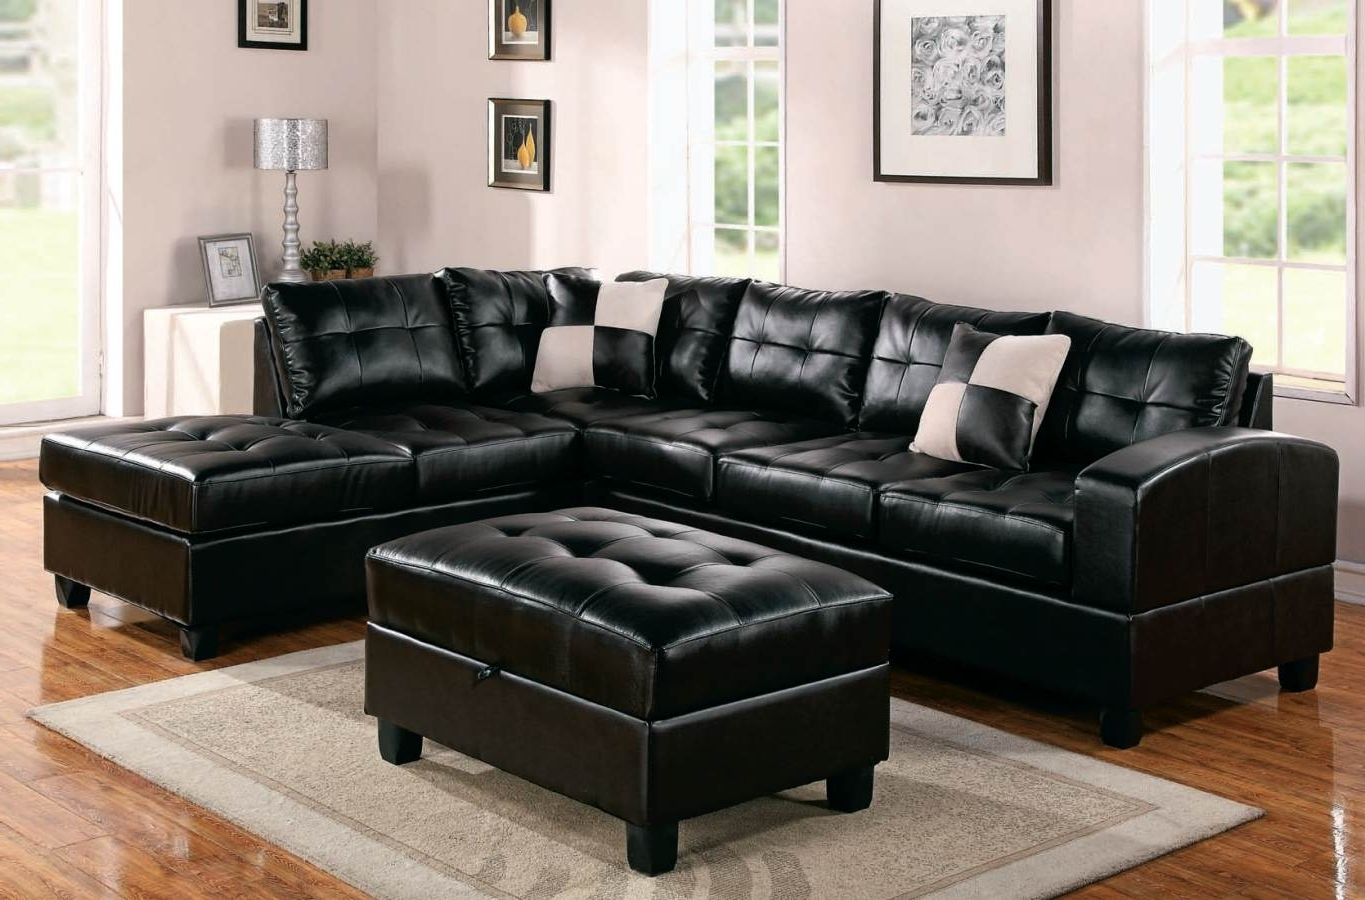 High Quality Sectional Sofas Within Newest Sectional Sofa Deals (View 11 of 20)